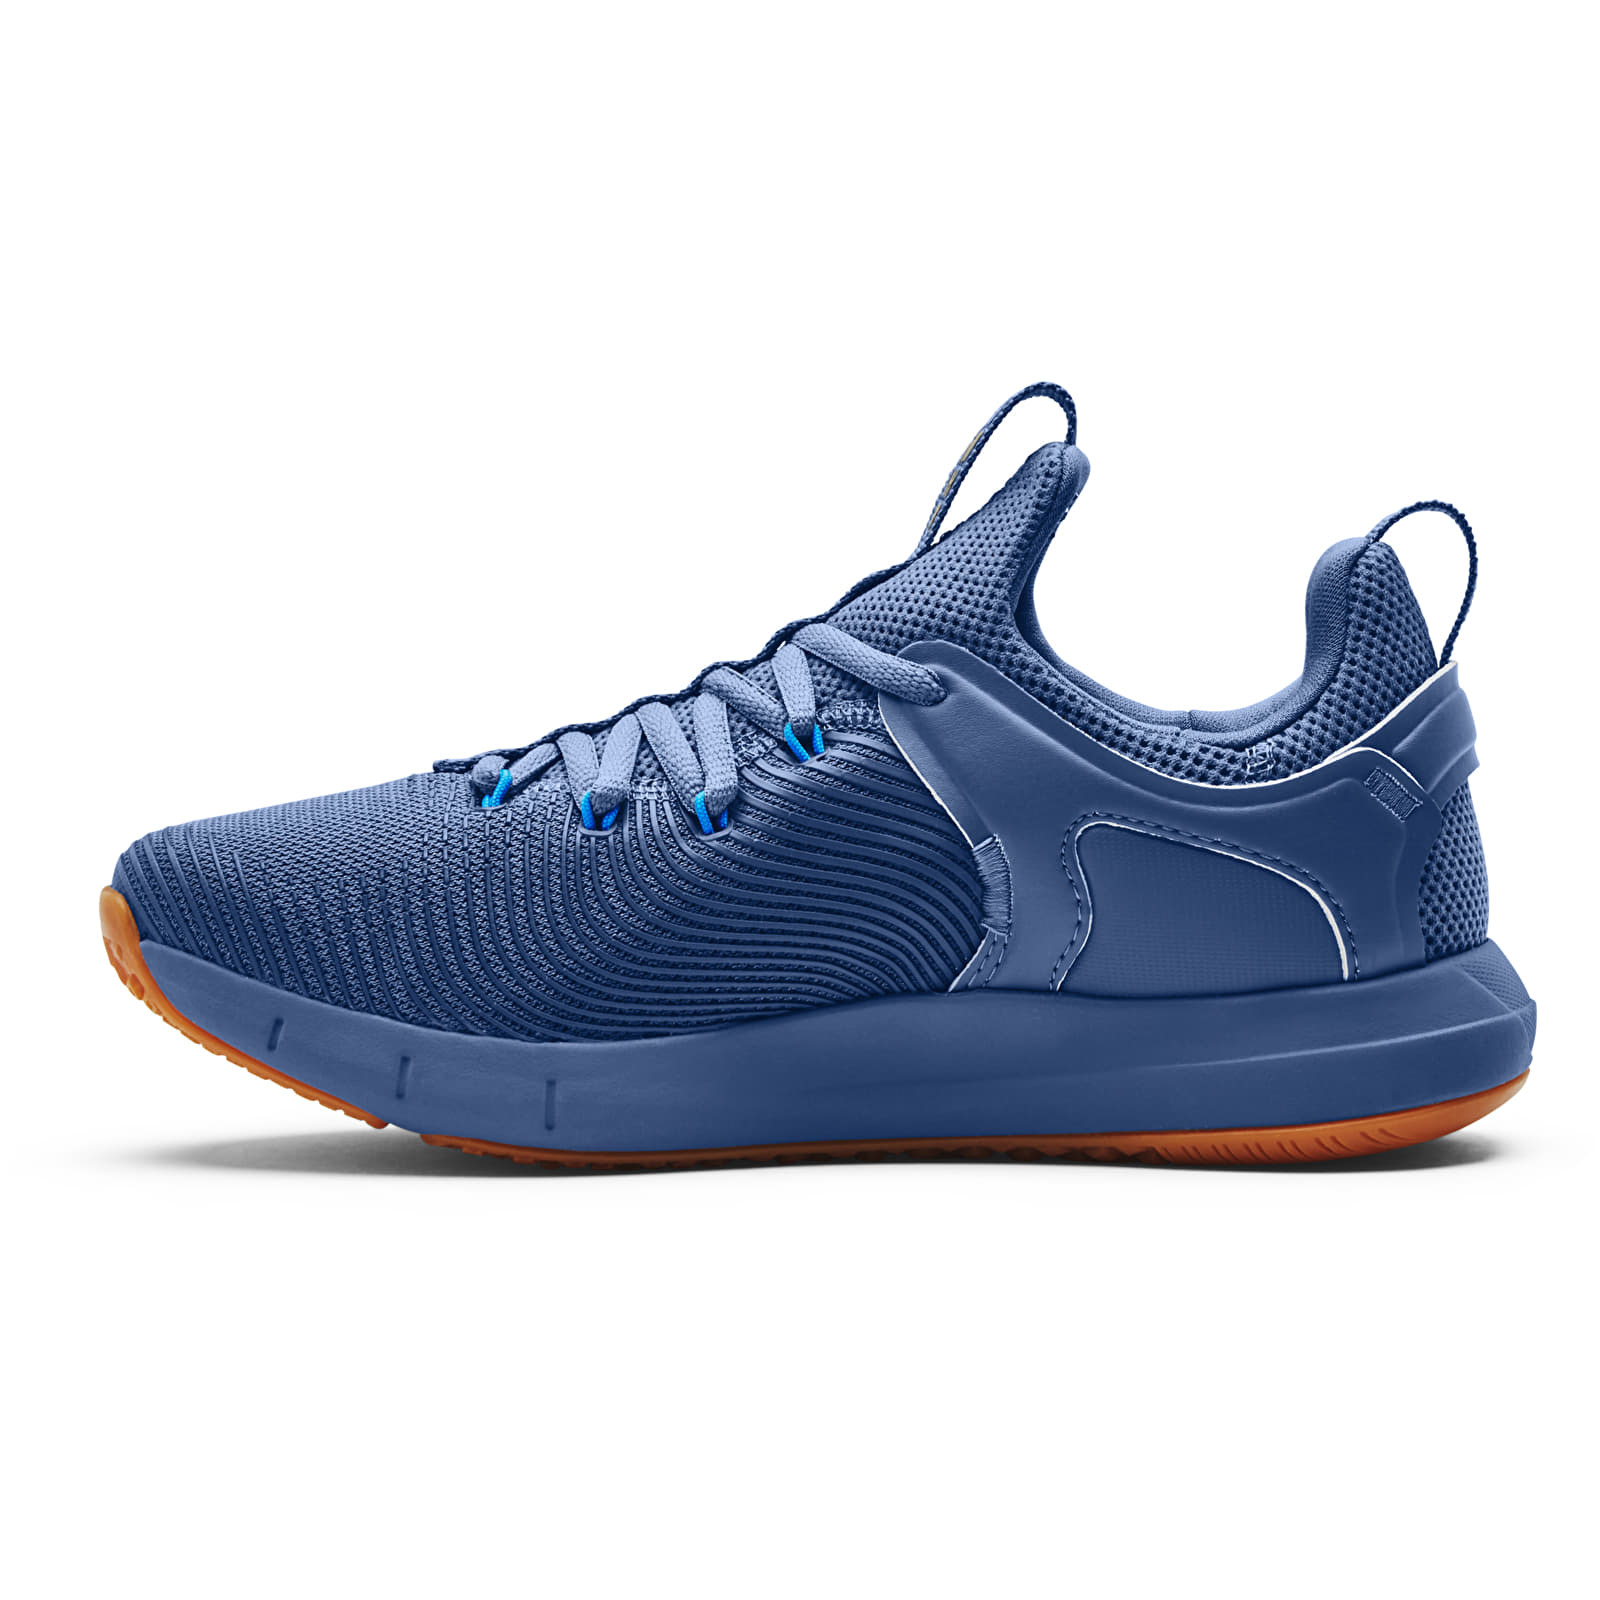 Under Armour W HOVR Rise 2 Blue 3023010-402